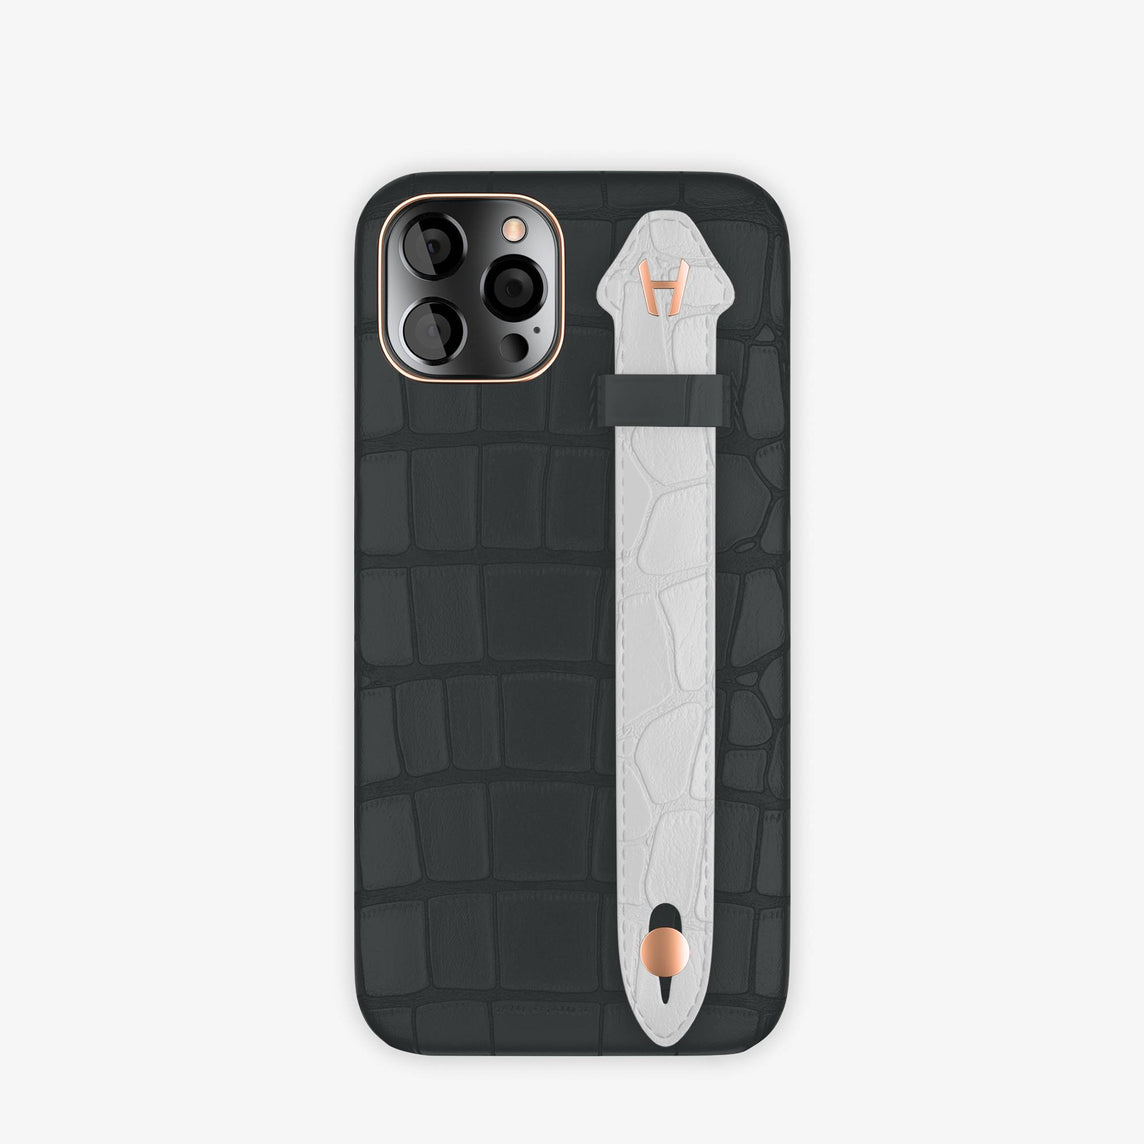 Alligator Side Finger Case iPhone 12 & iPhone 12 Pro | Anthracite/White -Rose Gold